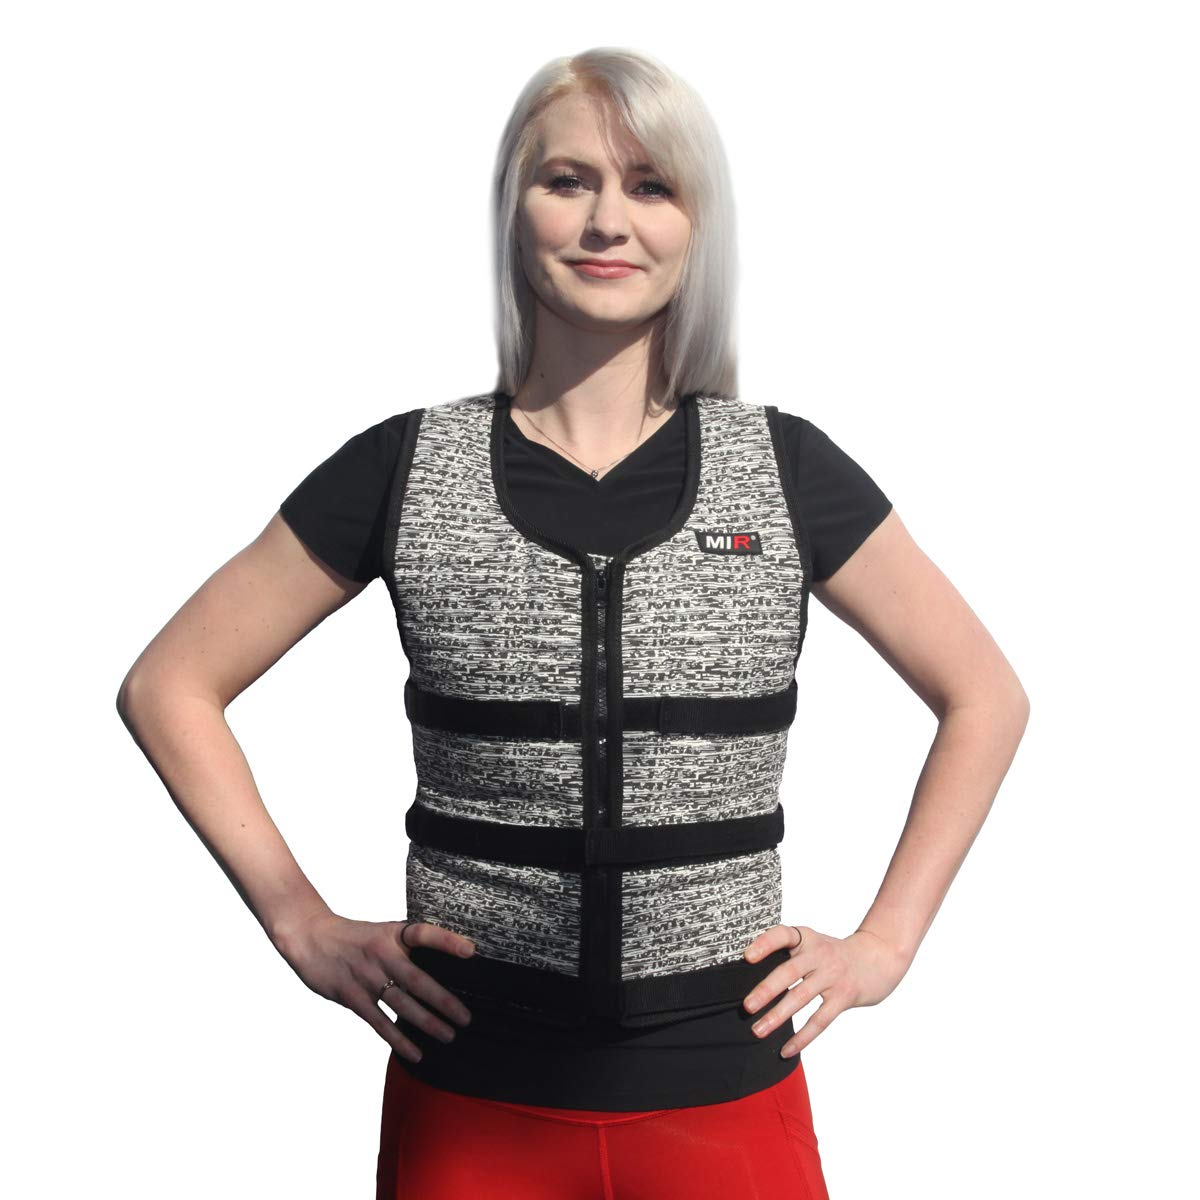 Mir Super Slim AIR Flow Adjustable Weighted Vest Machine Washable. for Men & Women (Black - 16LBS) by Mir (Image #3)